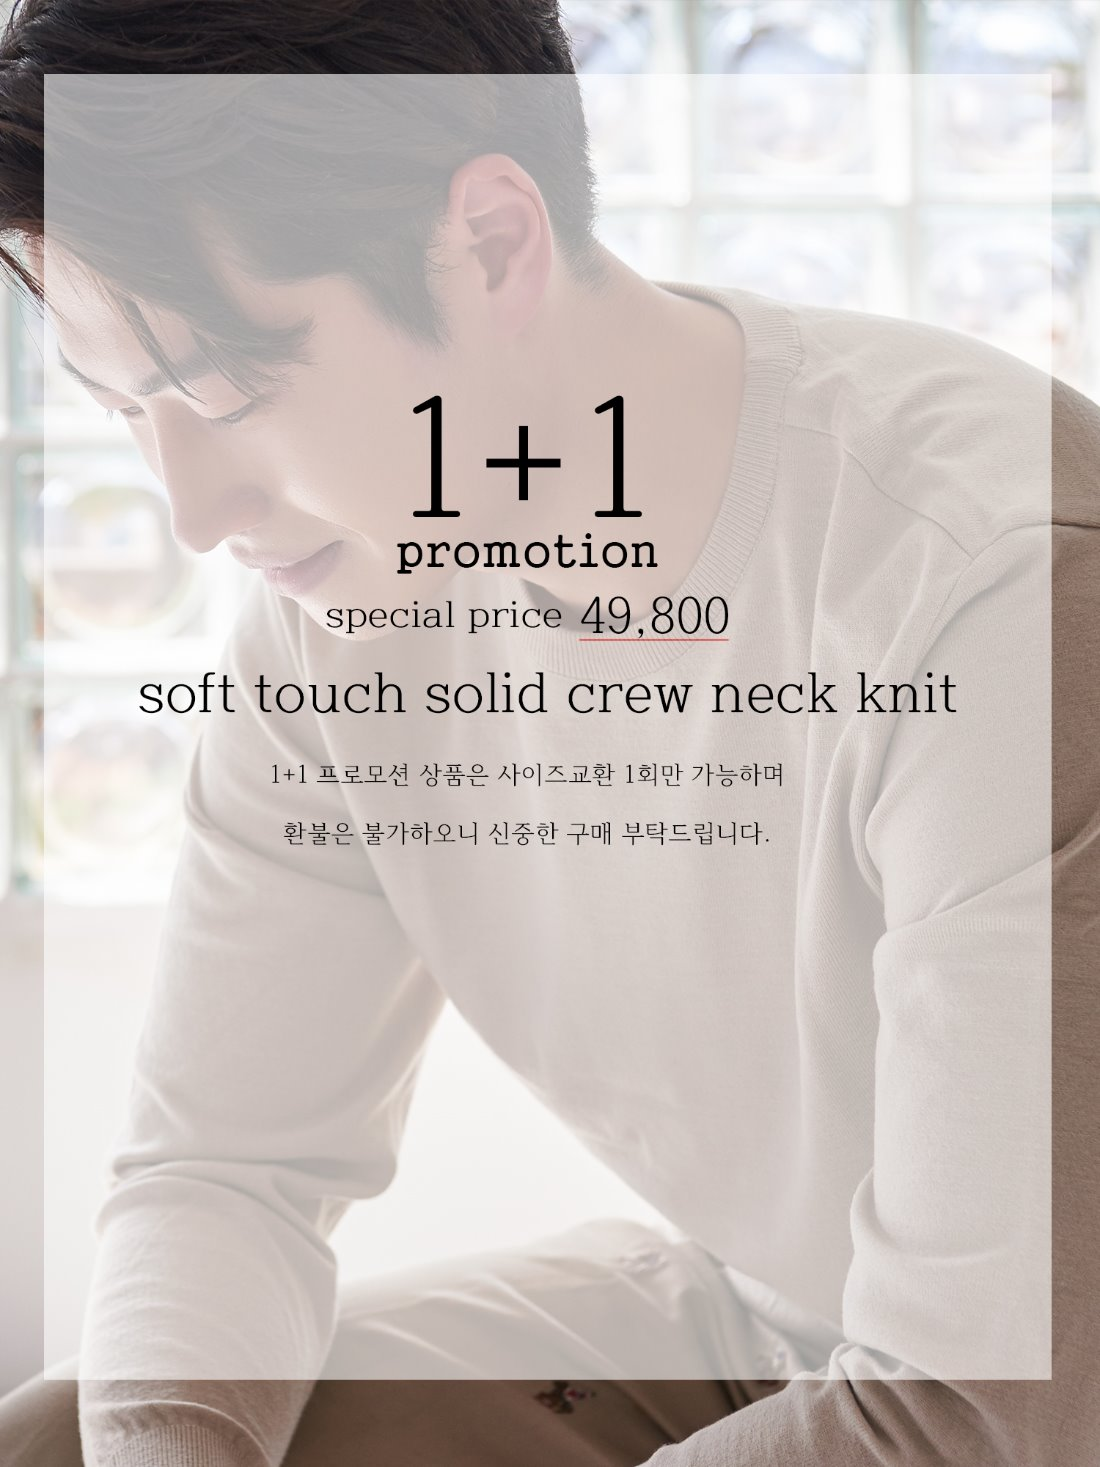 [드베르망] Soft touch solid crew neck knit 1+1